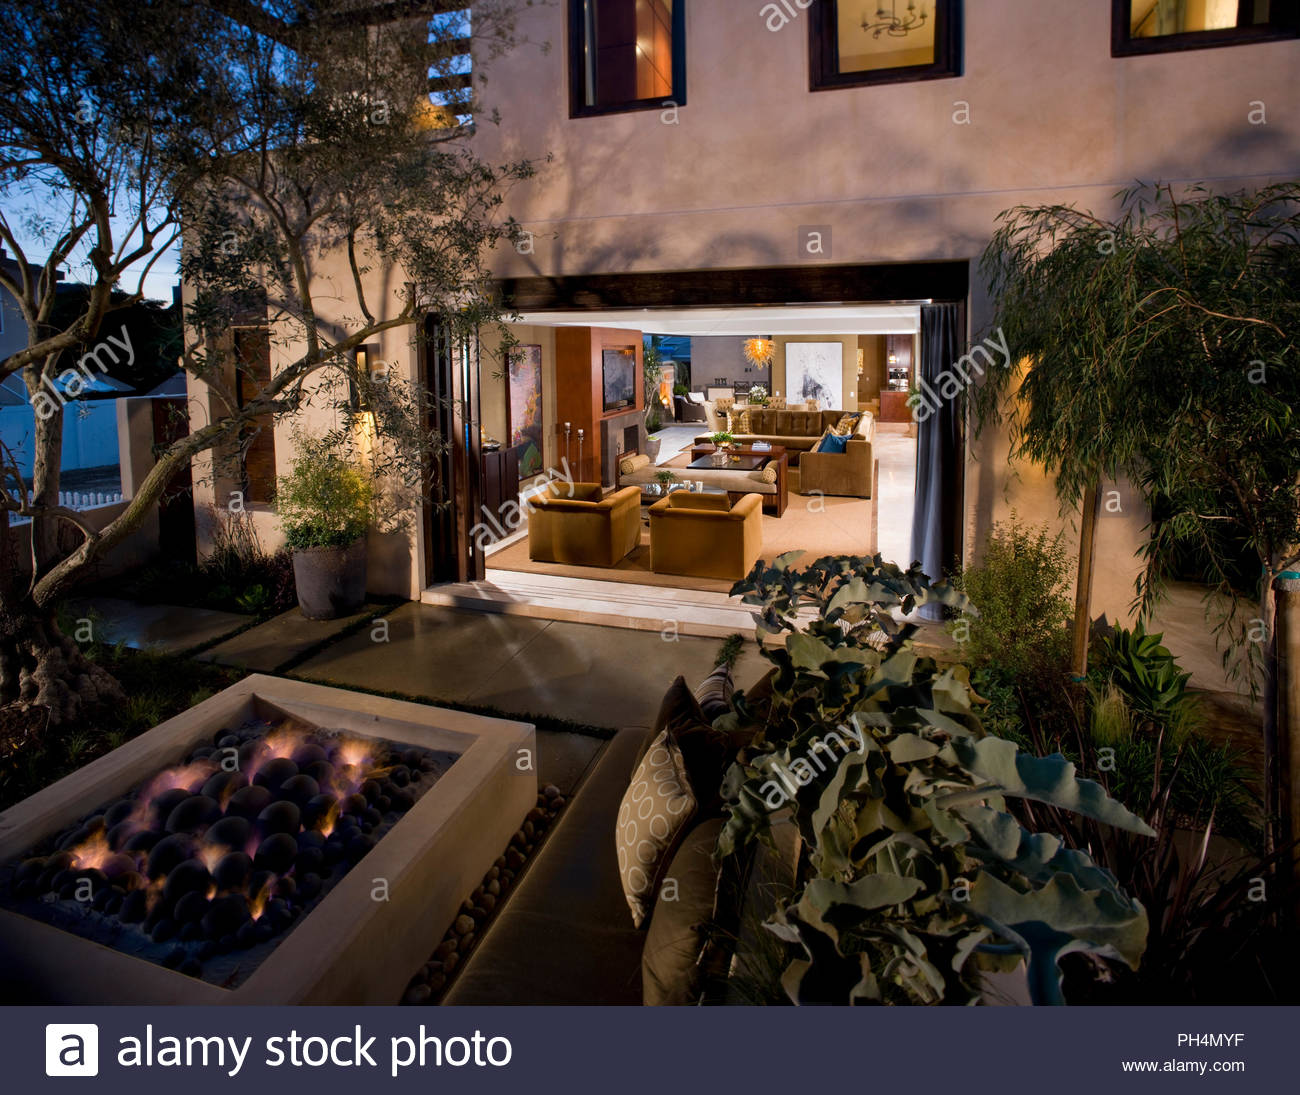 Firepit on patio at sunset - Stock Image